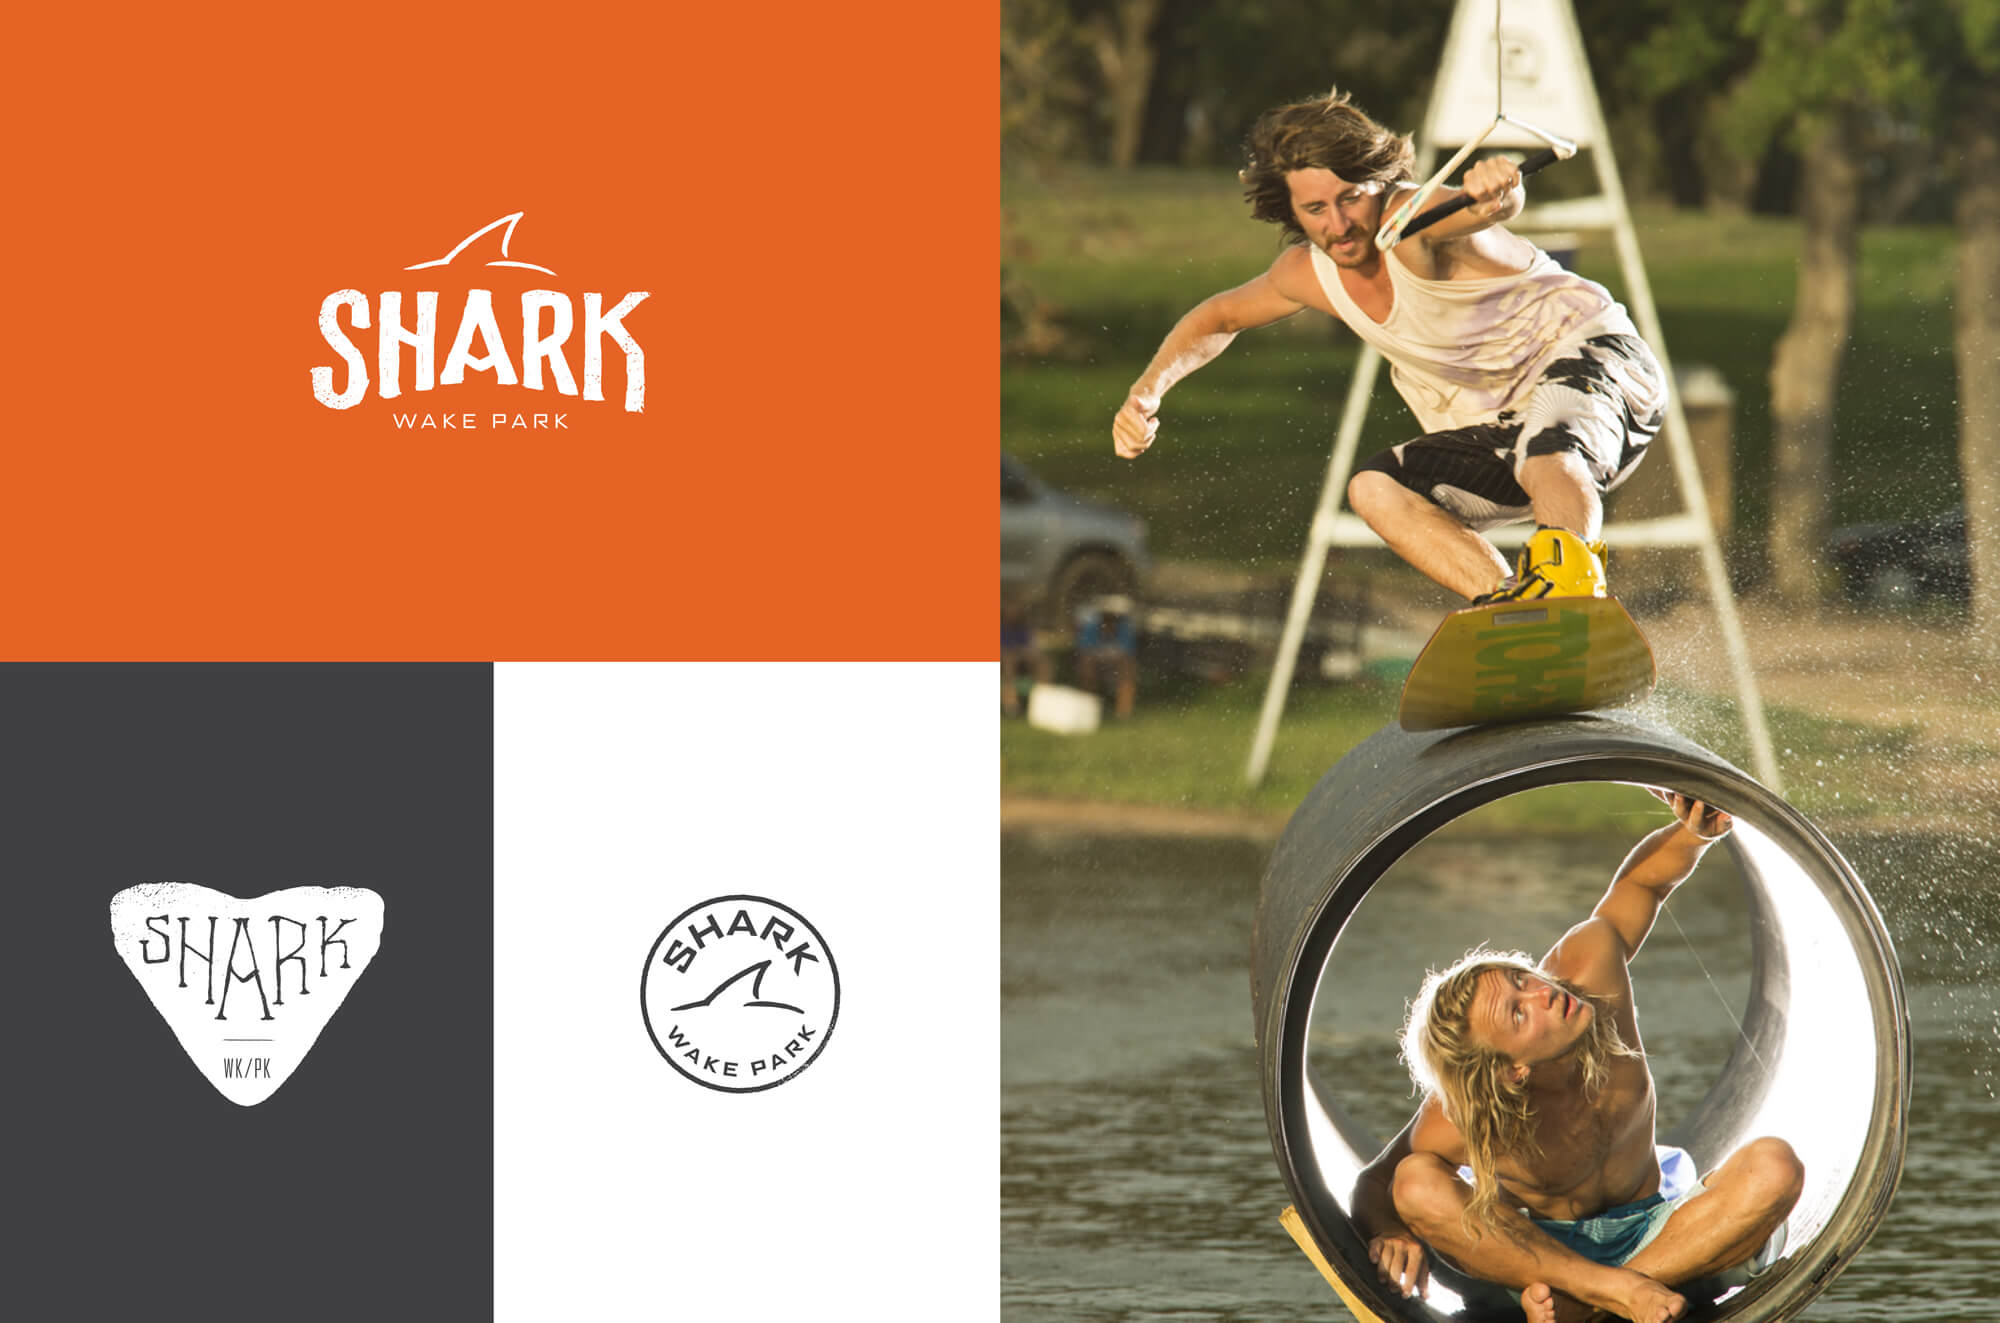 greg-norman-shark-wake-park-2